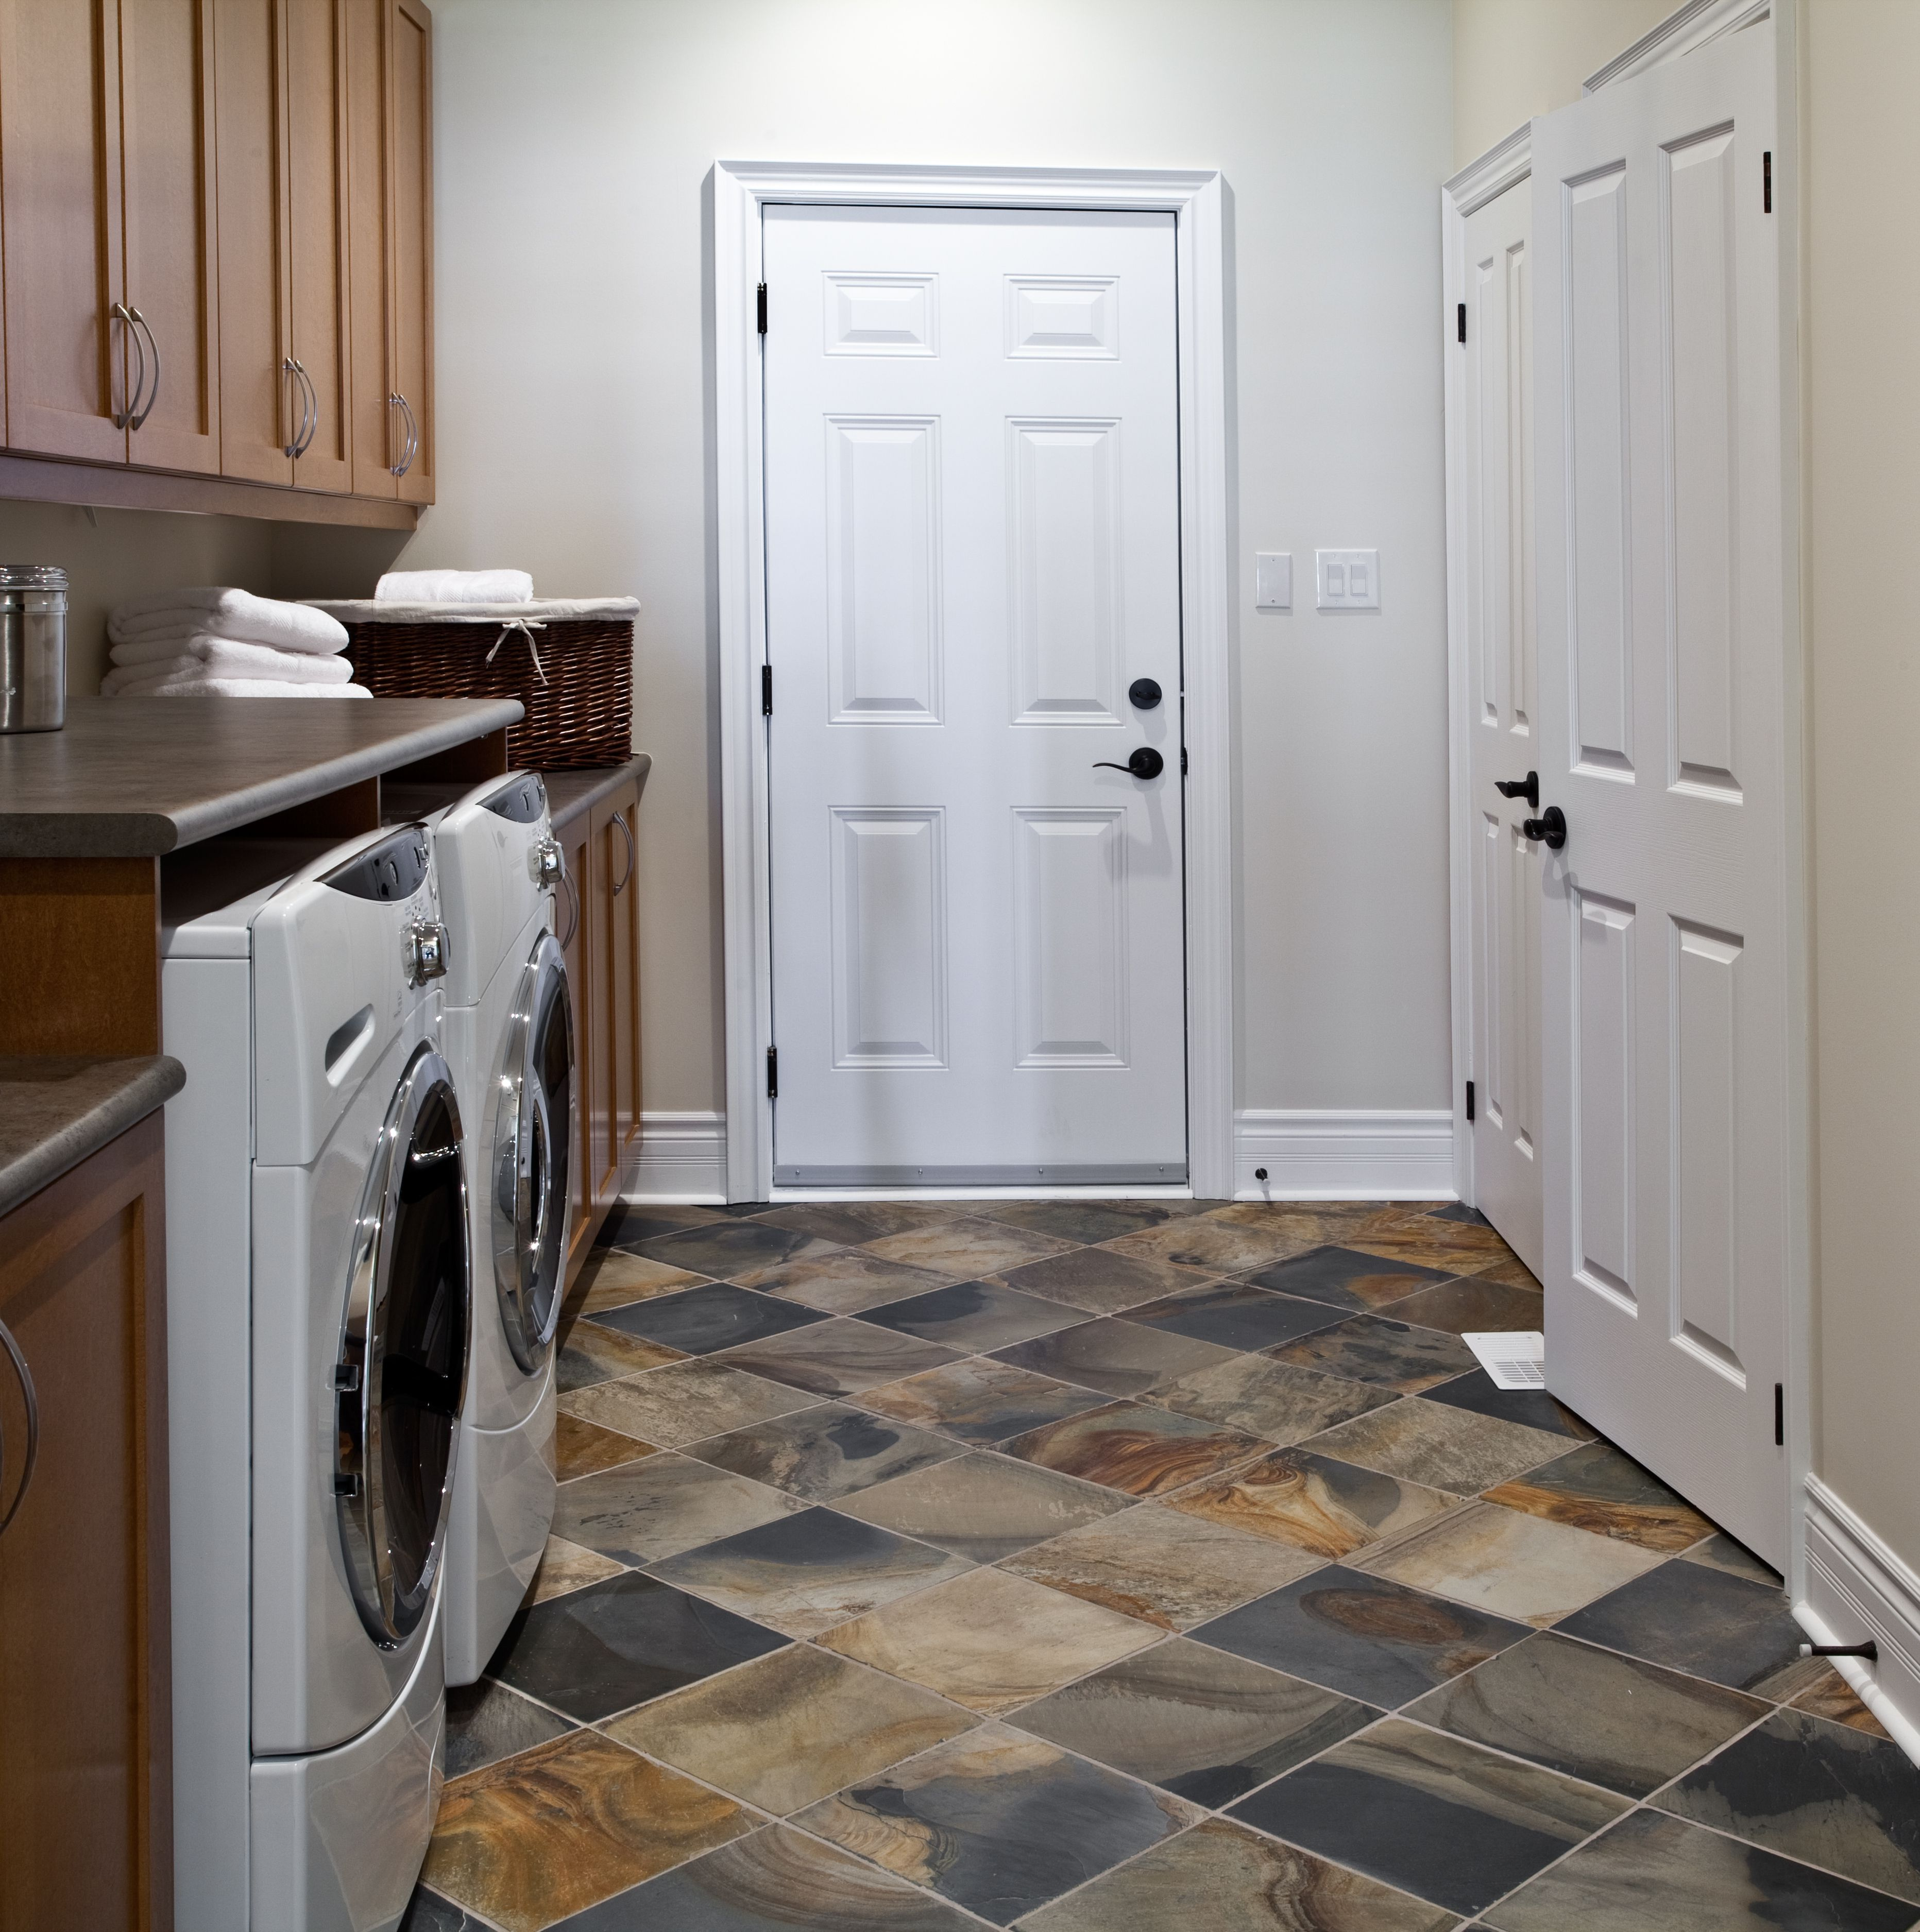 basic laundry room with white doors 5a97e2dcc5542e0036cc50ac